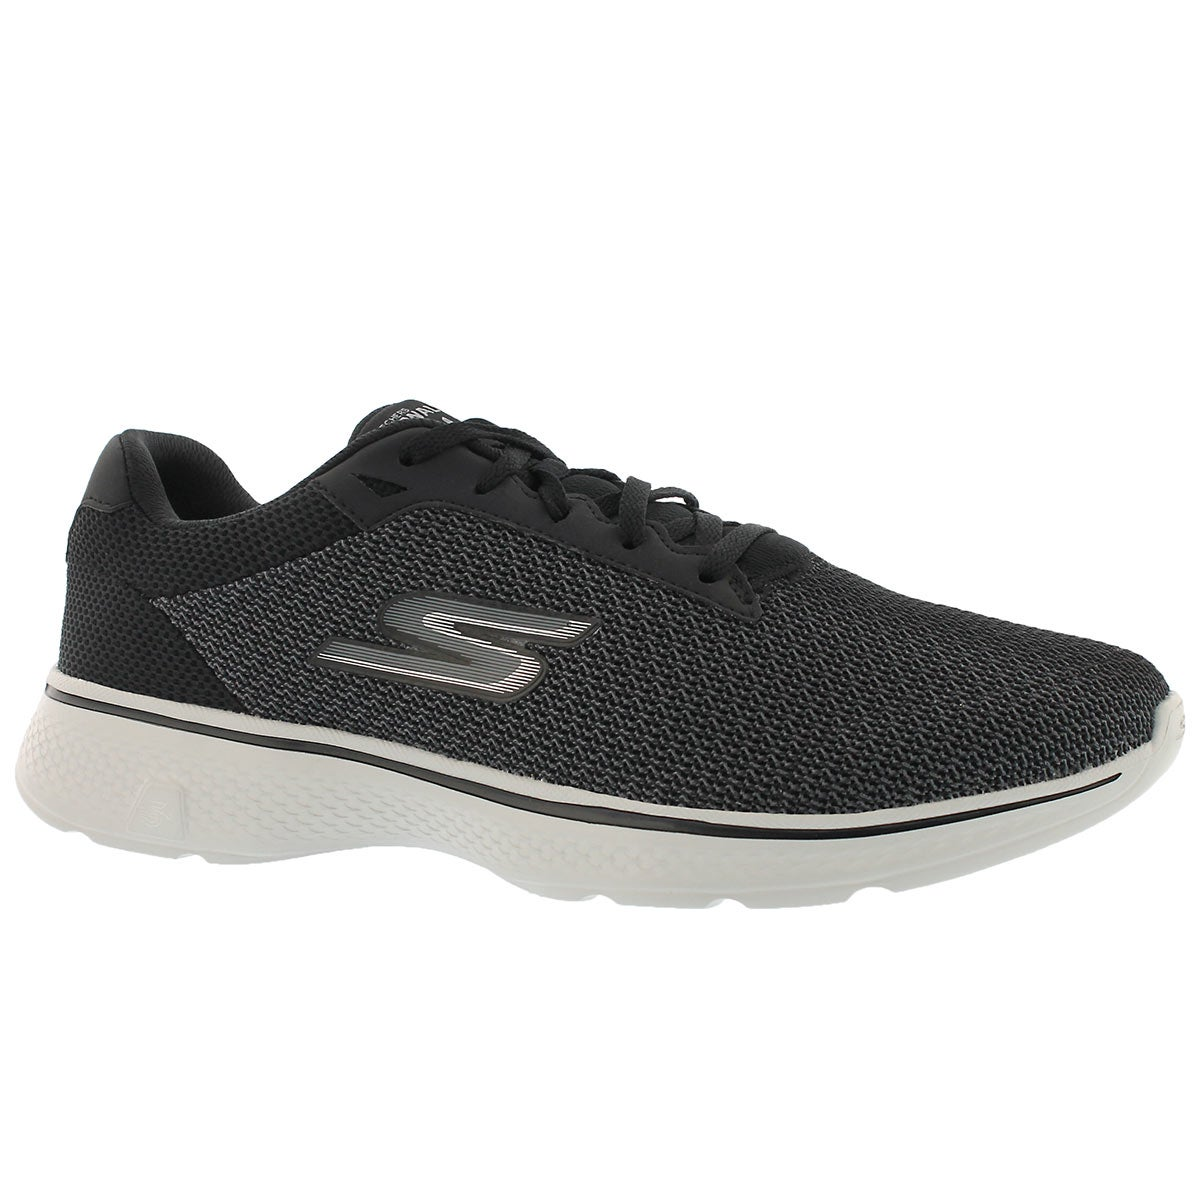 Men's GOwalk 4 black/grey laceup walking shoes